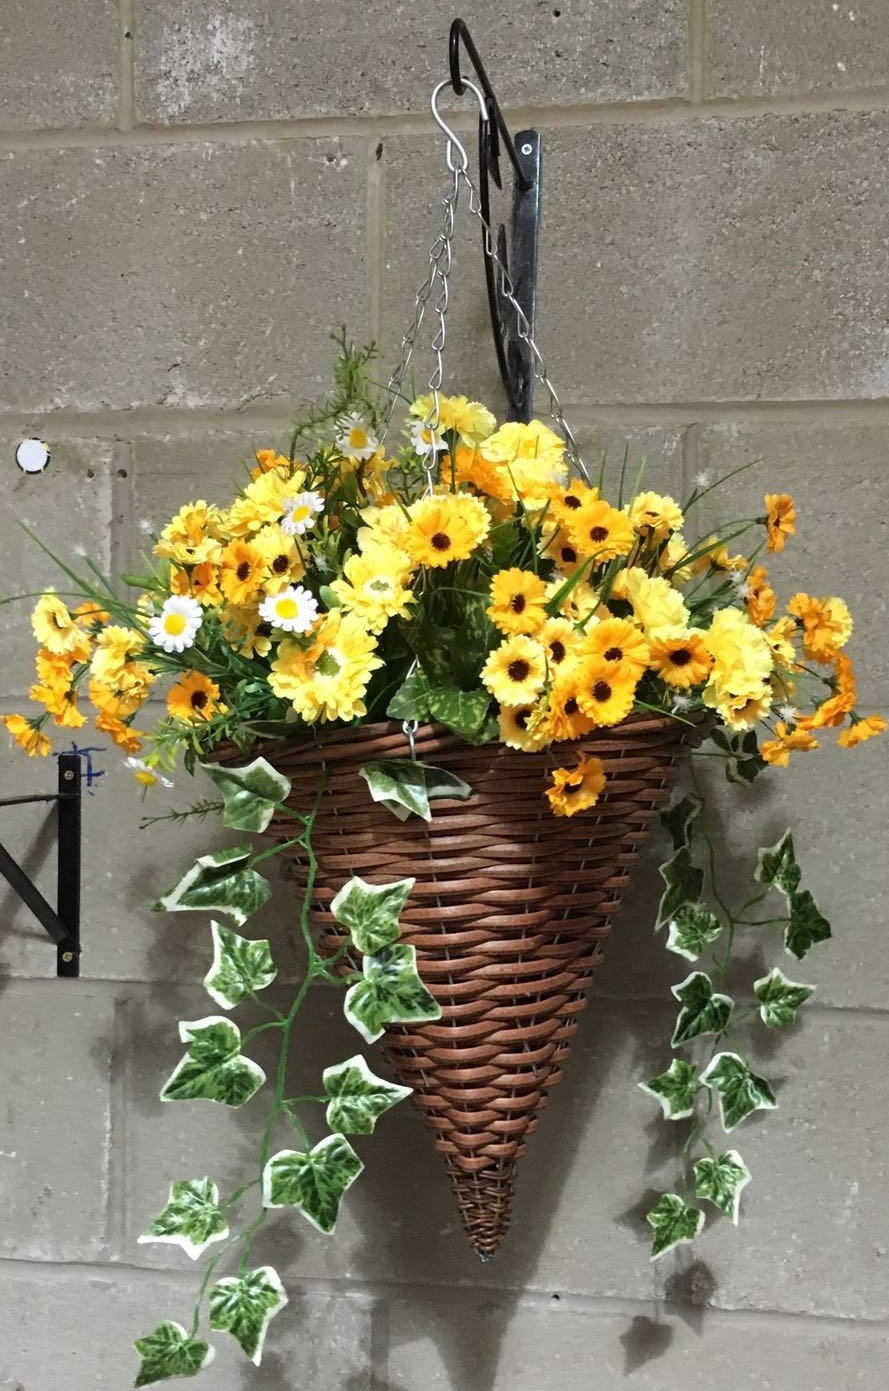 Artificial Flowers Hanging Cone / Outdoor, Yellow Mix, Basket and Bark Eternal Bloom